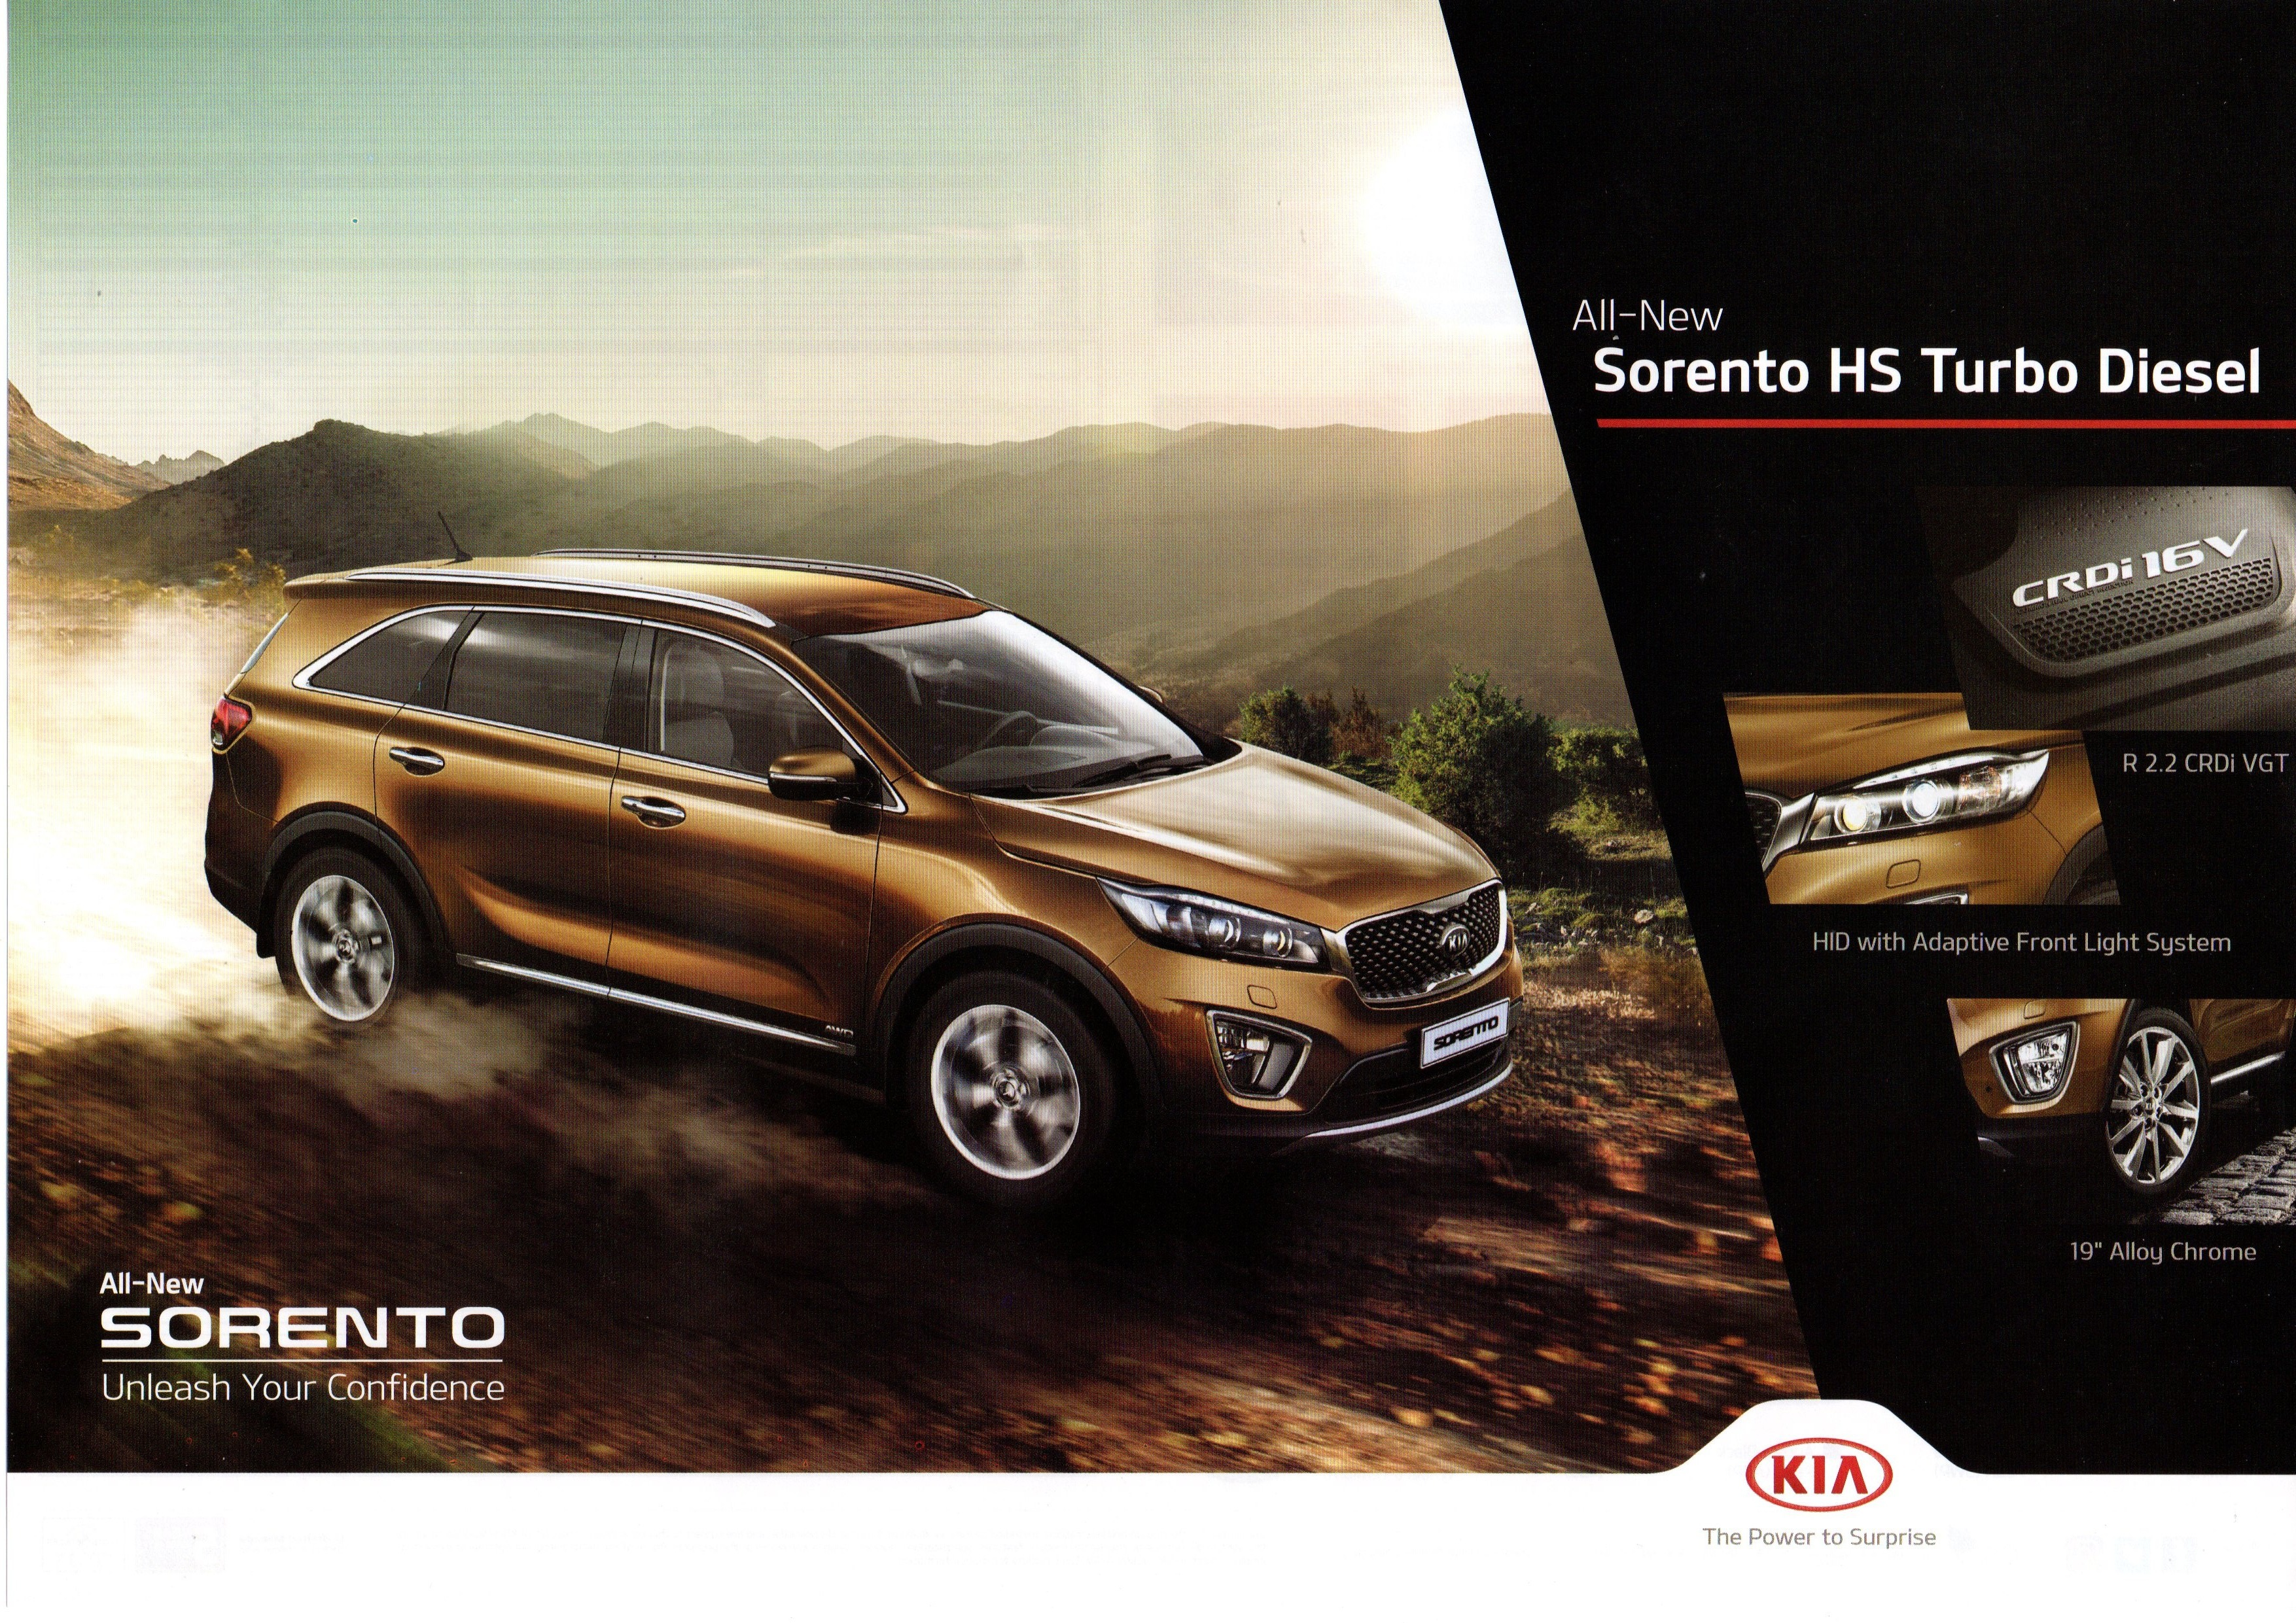 AN INVITATION TO THE NEW KIA SORENTO HS TURBO DIESEL 2.2 VGT